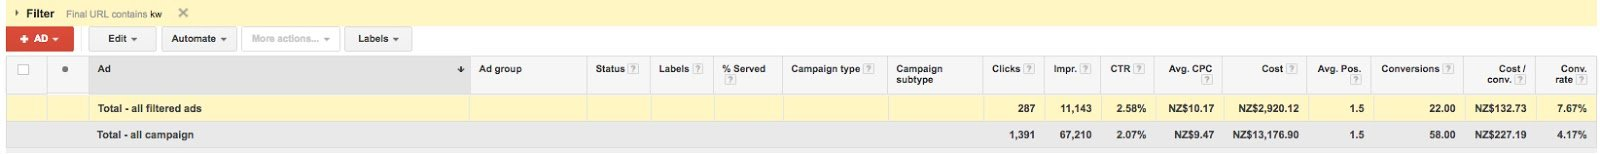 Success in AdWords. CPA is lower and conversion rate is higher when using DKIs in this campaign.